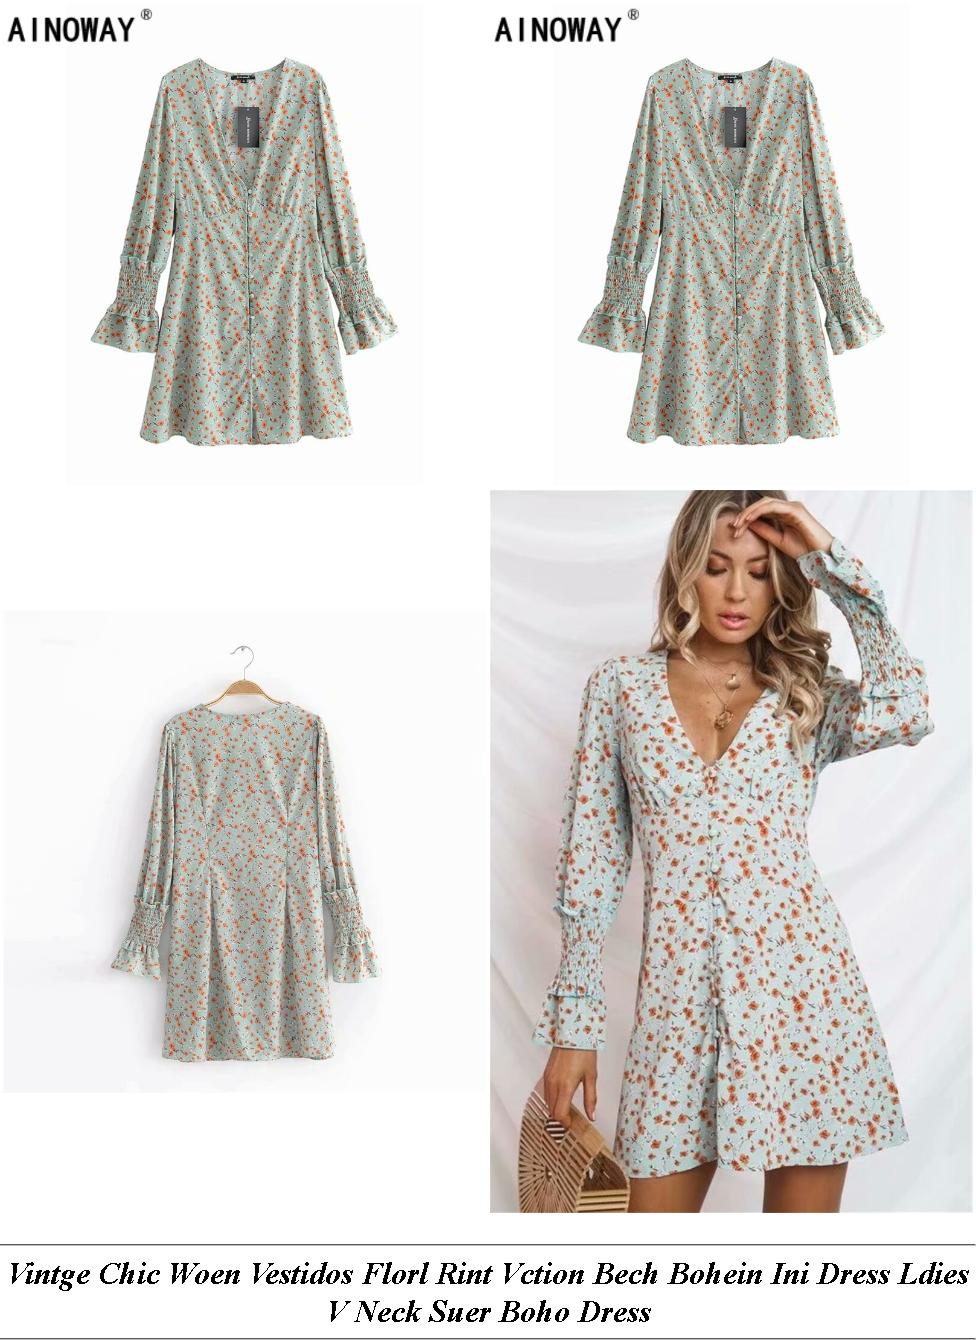 Modest Dresses With Sleeves Canada - Shirt Uy Online D - Fashion Stores Instagram